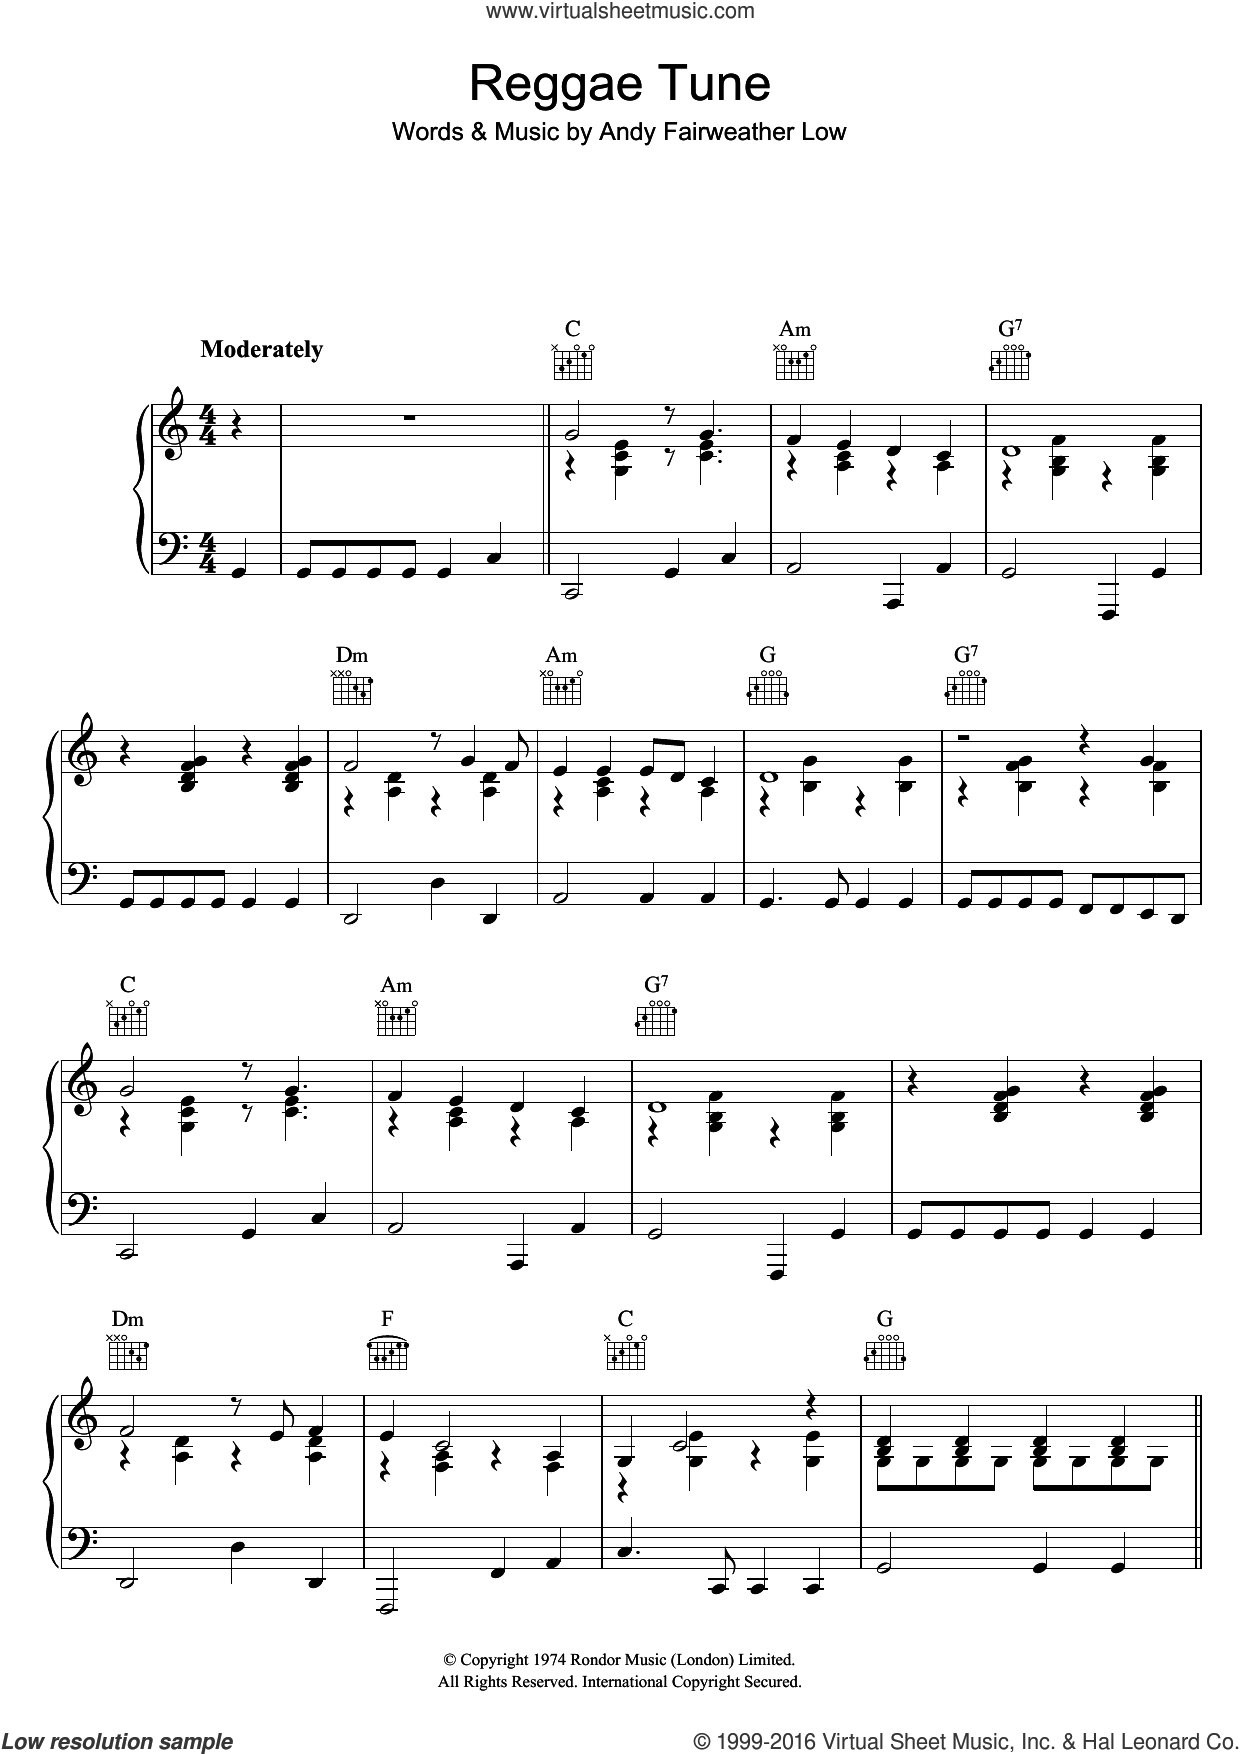 Reggae Tune sheet music for voice, piano or guitar by Andy Fairweather Low. Score Image Preview.